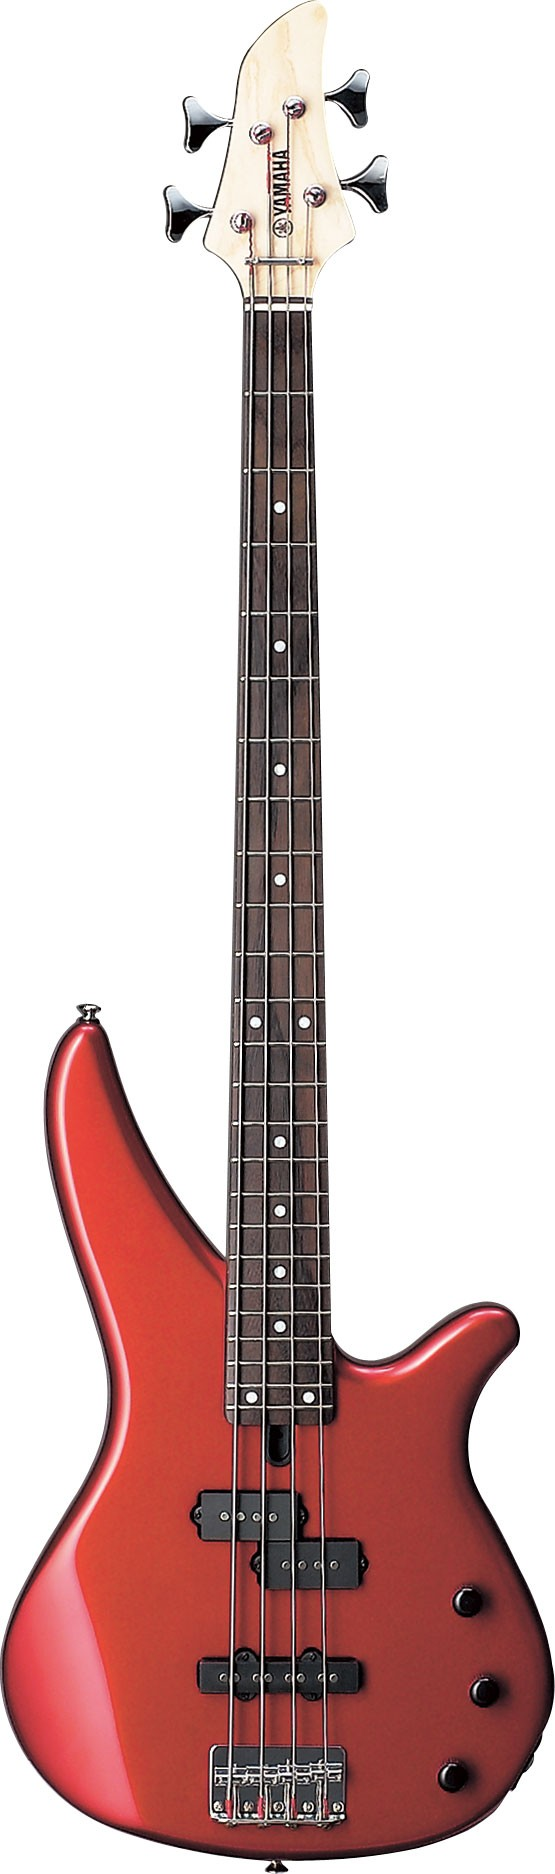 Yamaha RBX170 four string bass